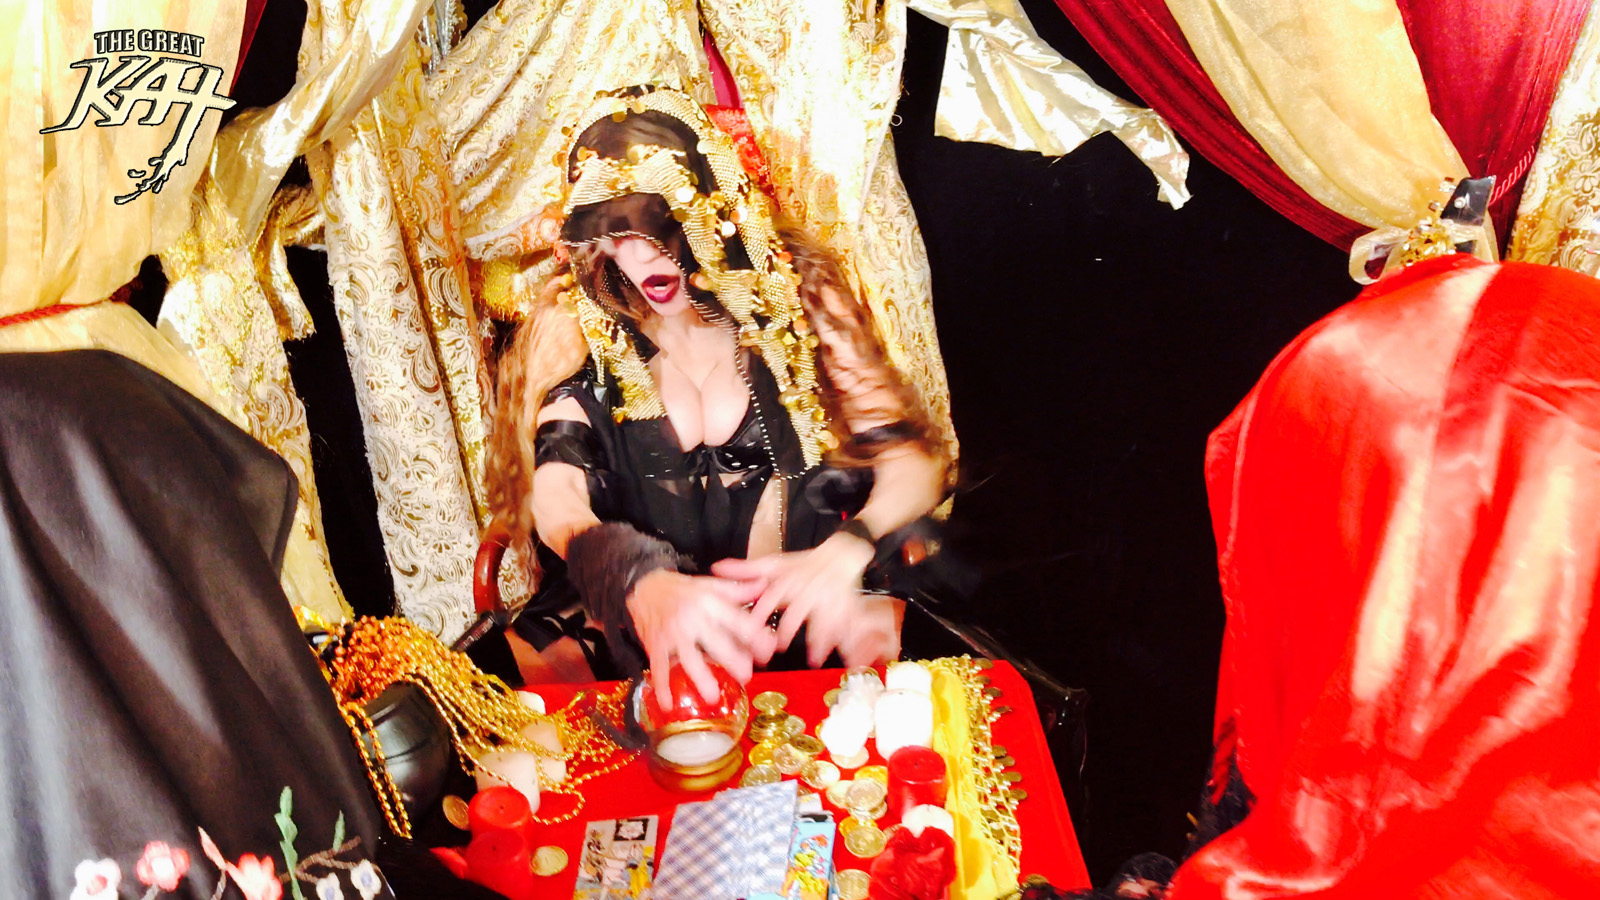 "MADAME KAT FORTUNE TELLER!! From The Great Kat's SARASATE'S ""CARMEN FANTASY"" MUSIC VIDEO!"